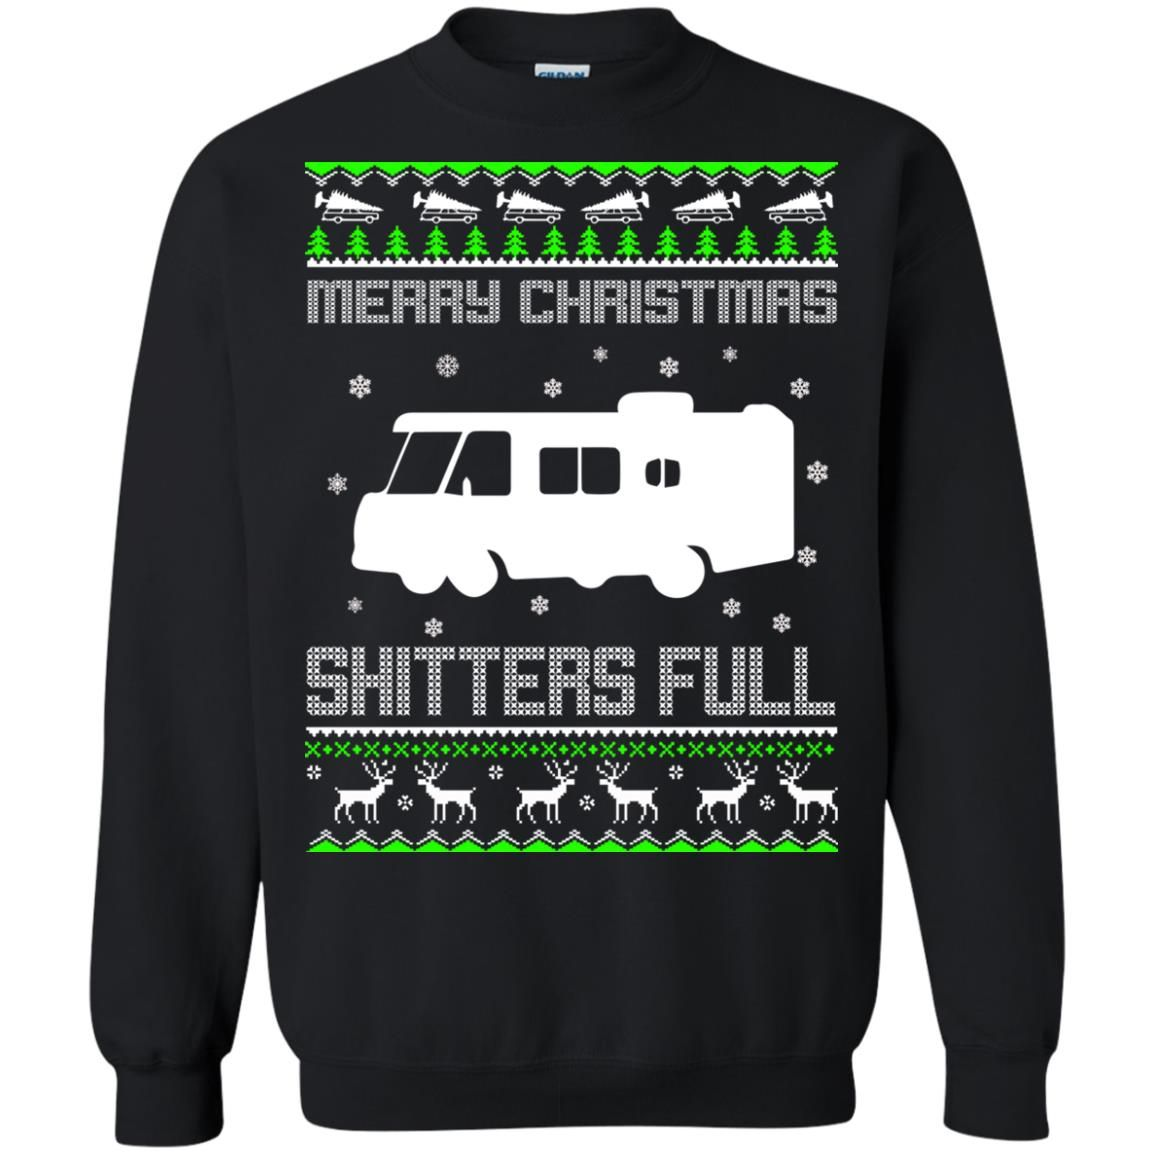 image 1571 - Christmas Vacation: Merry Christmas Shitter's full ugly sweater, hoodie